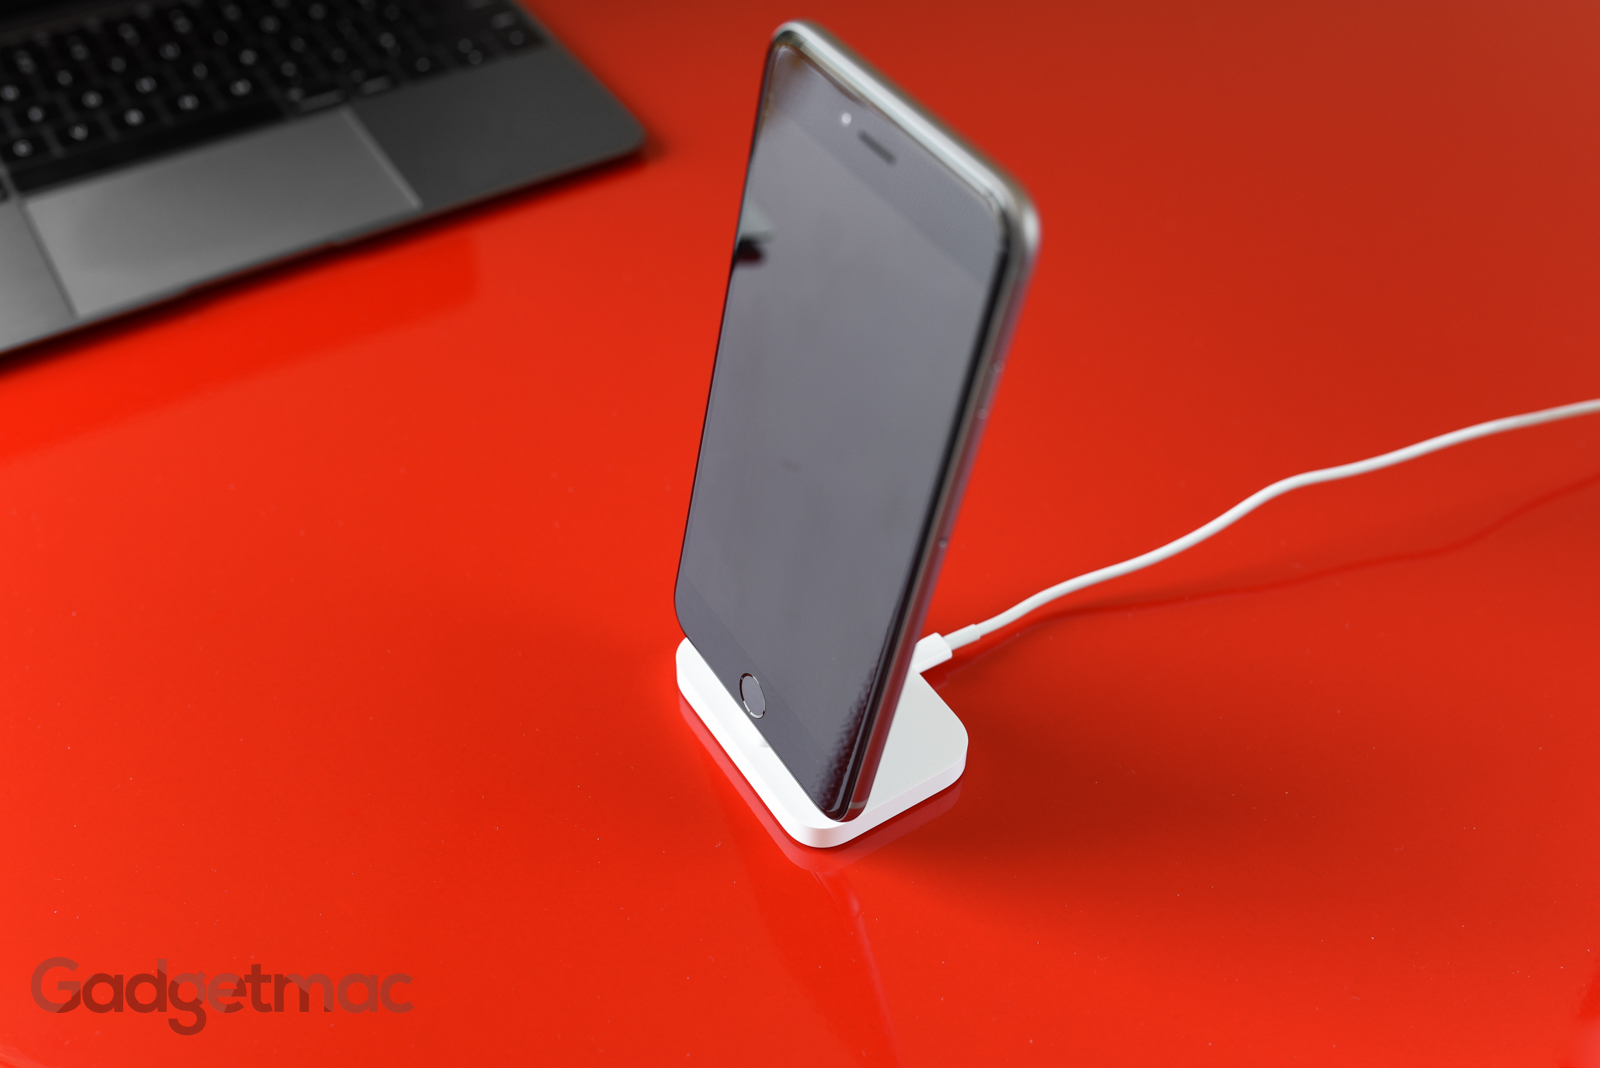 apple-iphone-lightning-dock-iphone-6-plus-charging.jpg